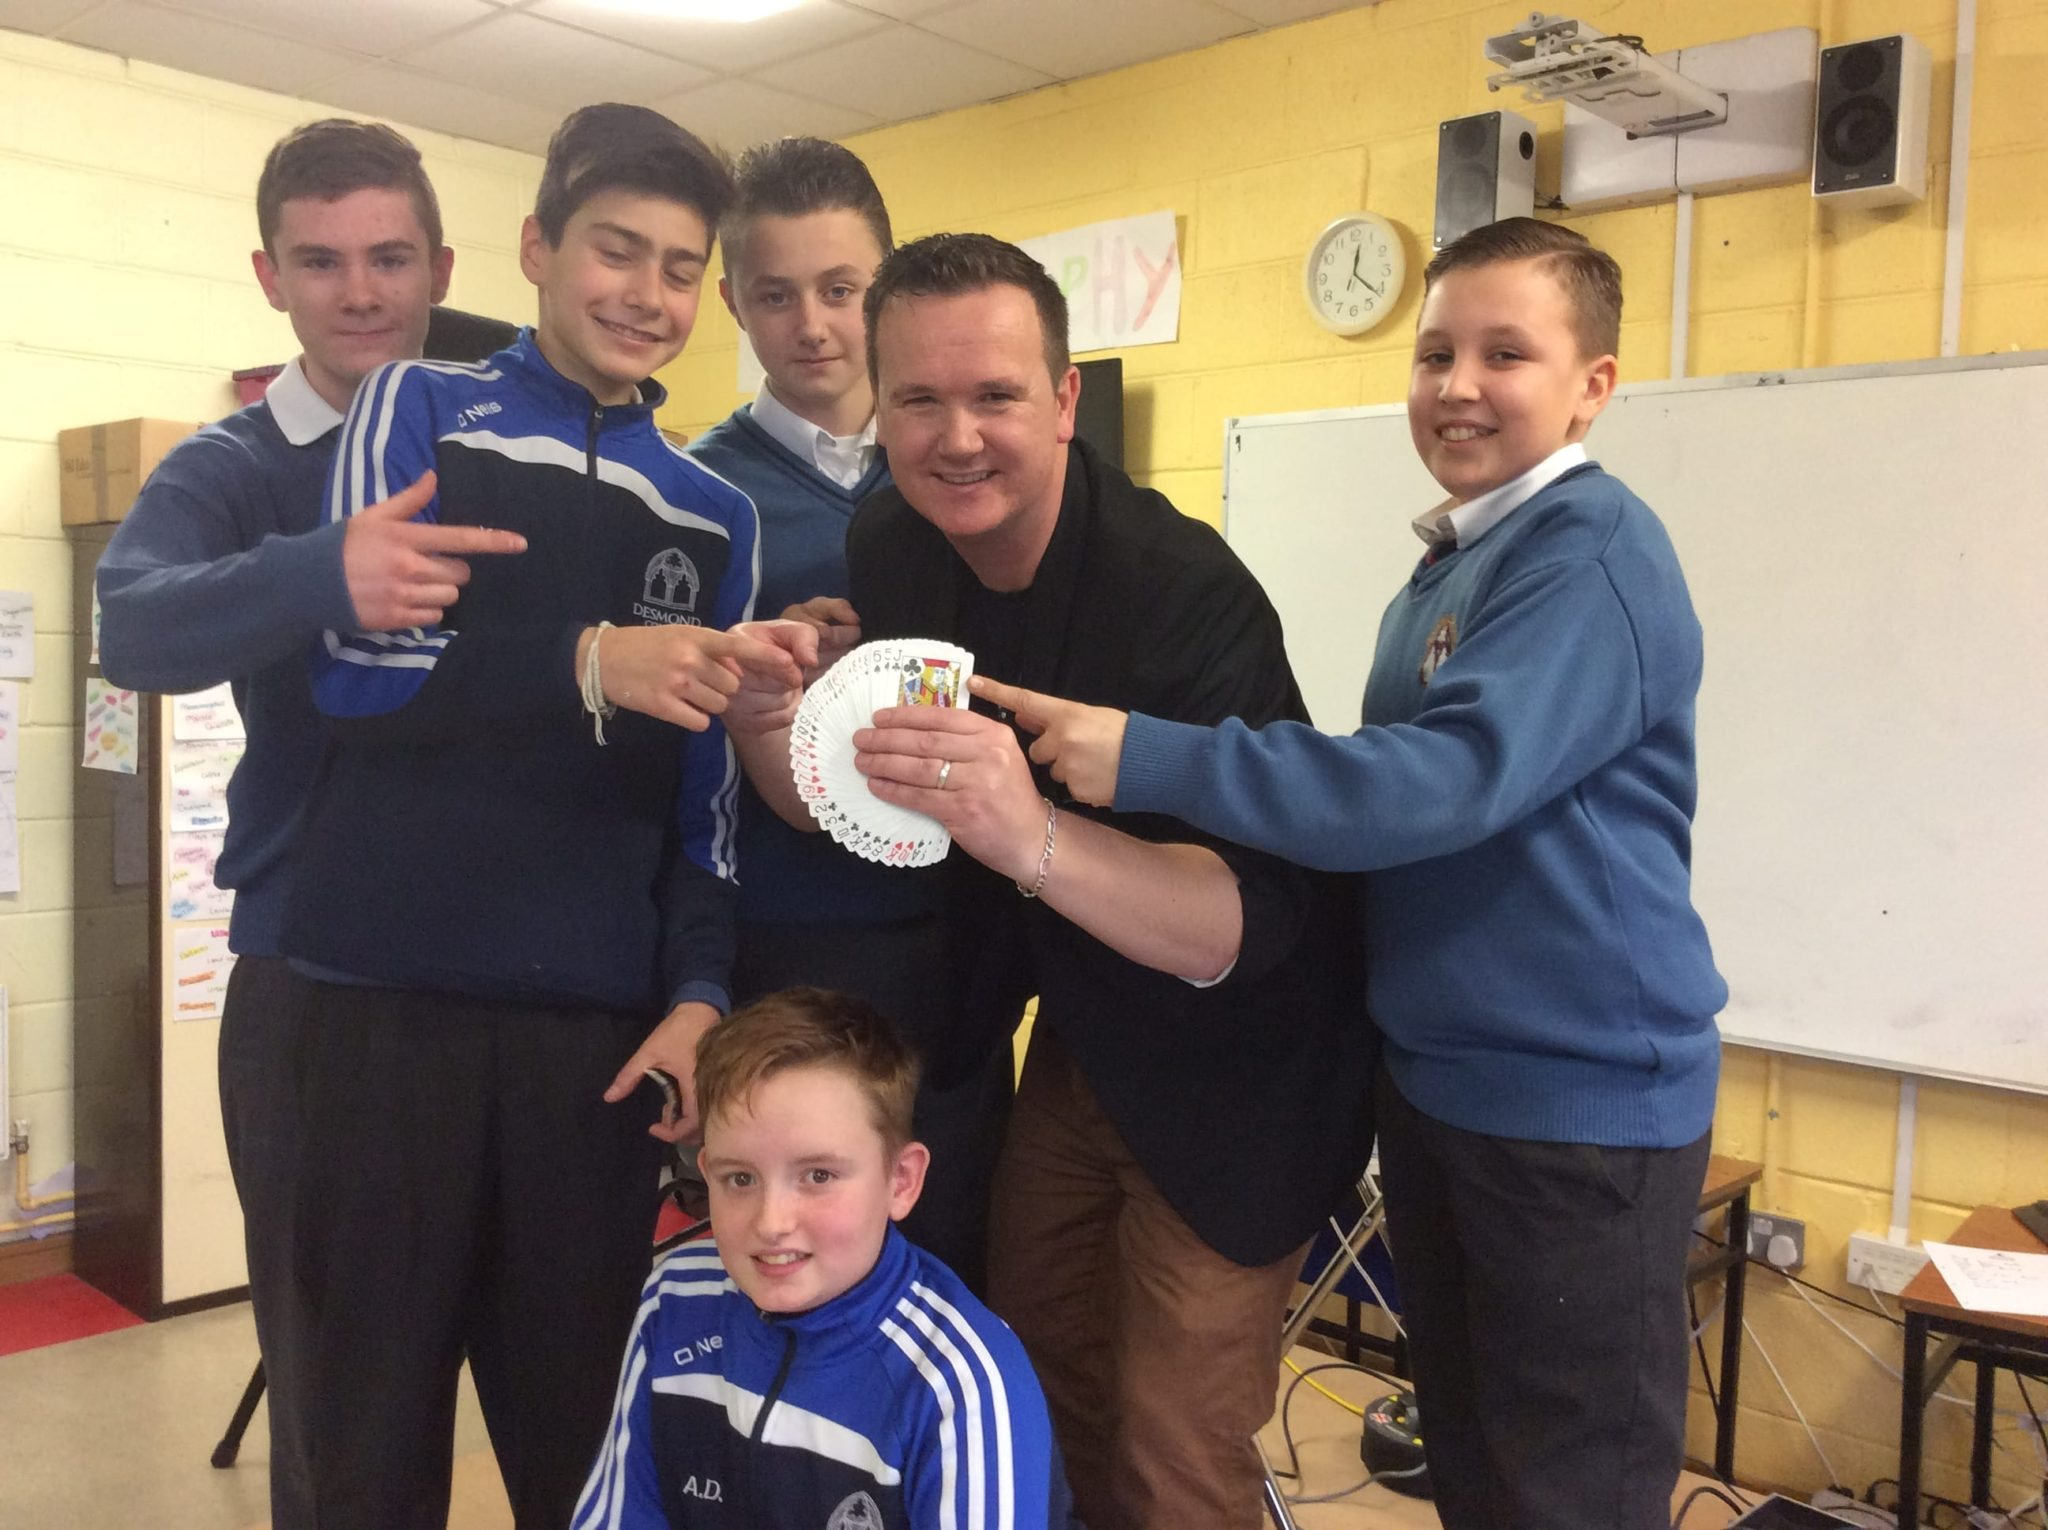 Jan 2016: Clodagh McNamee, Sarah Leahy, Catherine Cahill, Genevieve Collins, Michael Conlon and AJ O Donovan pictures with Magician Leon following a magic show in Desmond College as part of Numeracy week.